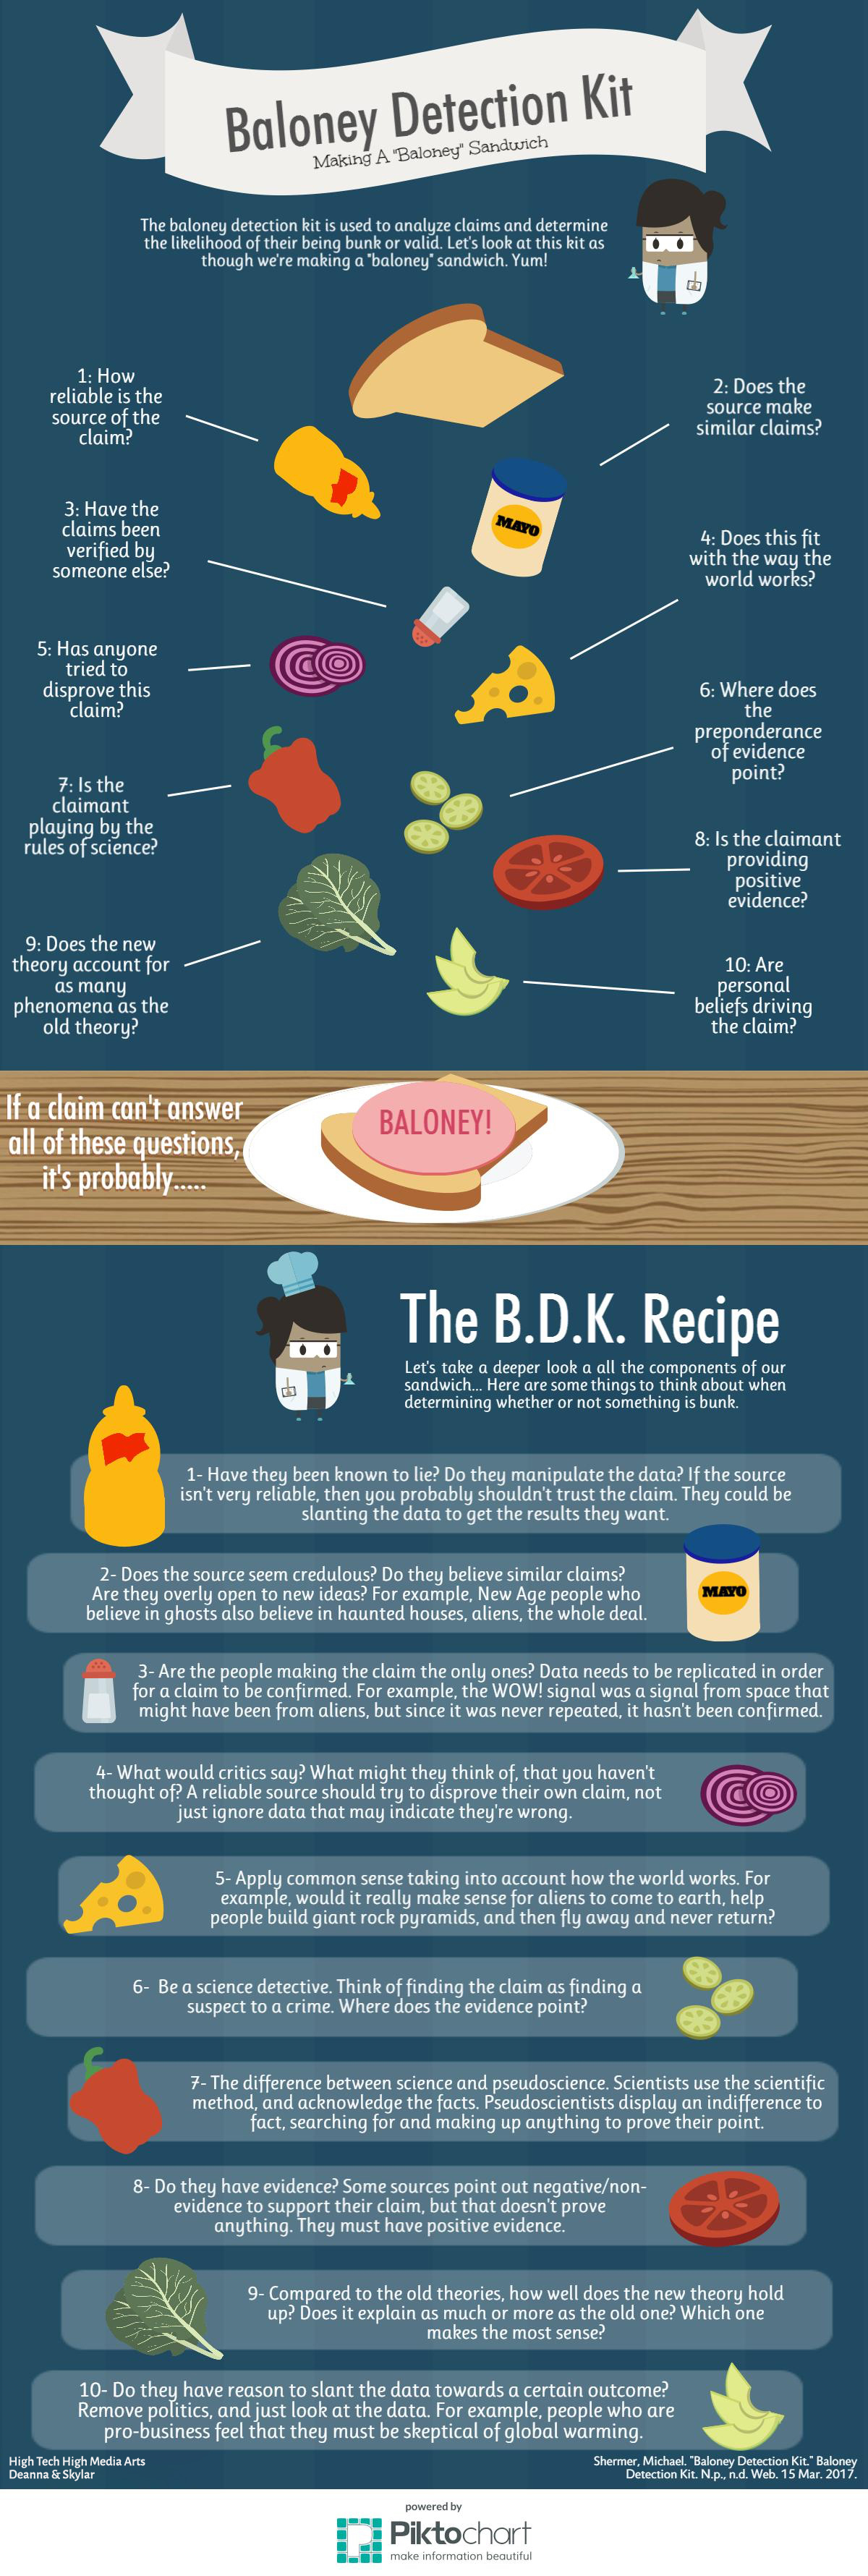 HS-Students-Baloney-Detection-Kit-Sandwich-Infographic